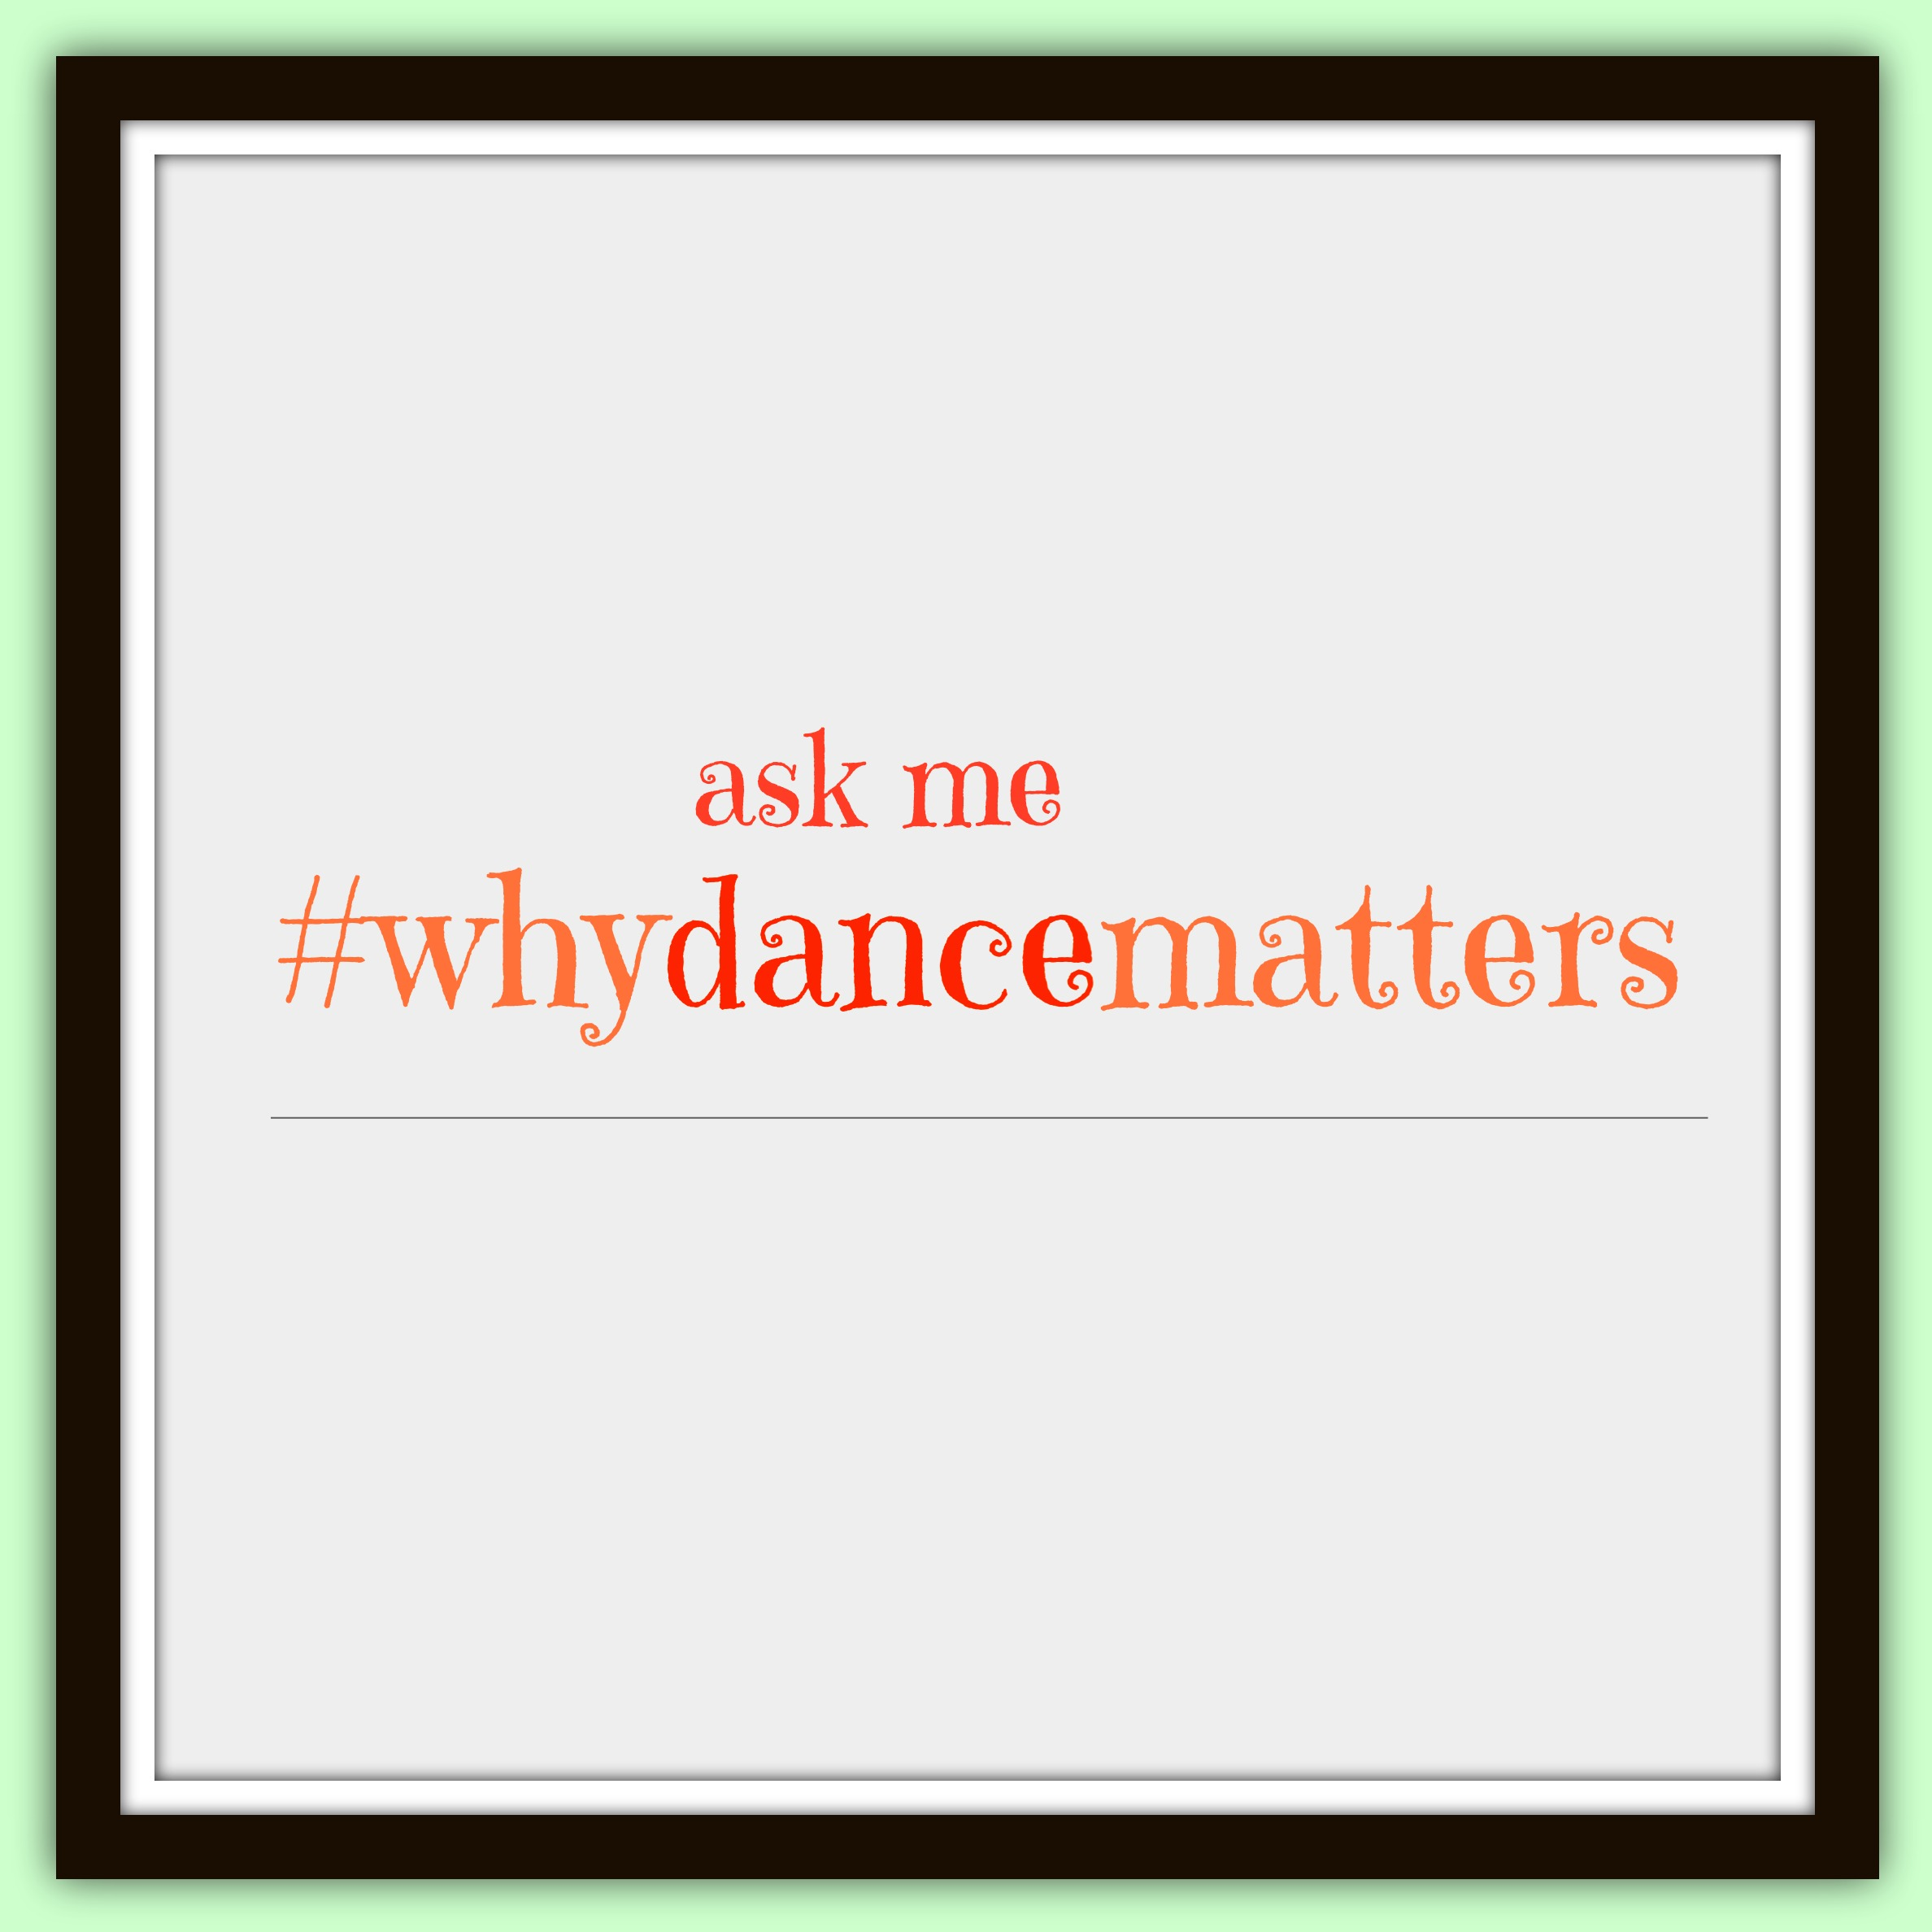 We Know #WhyDanceMatters